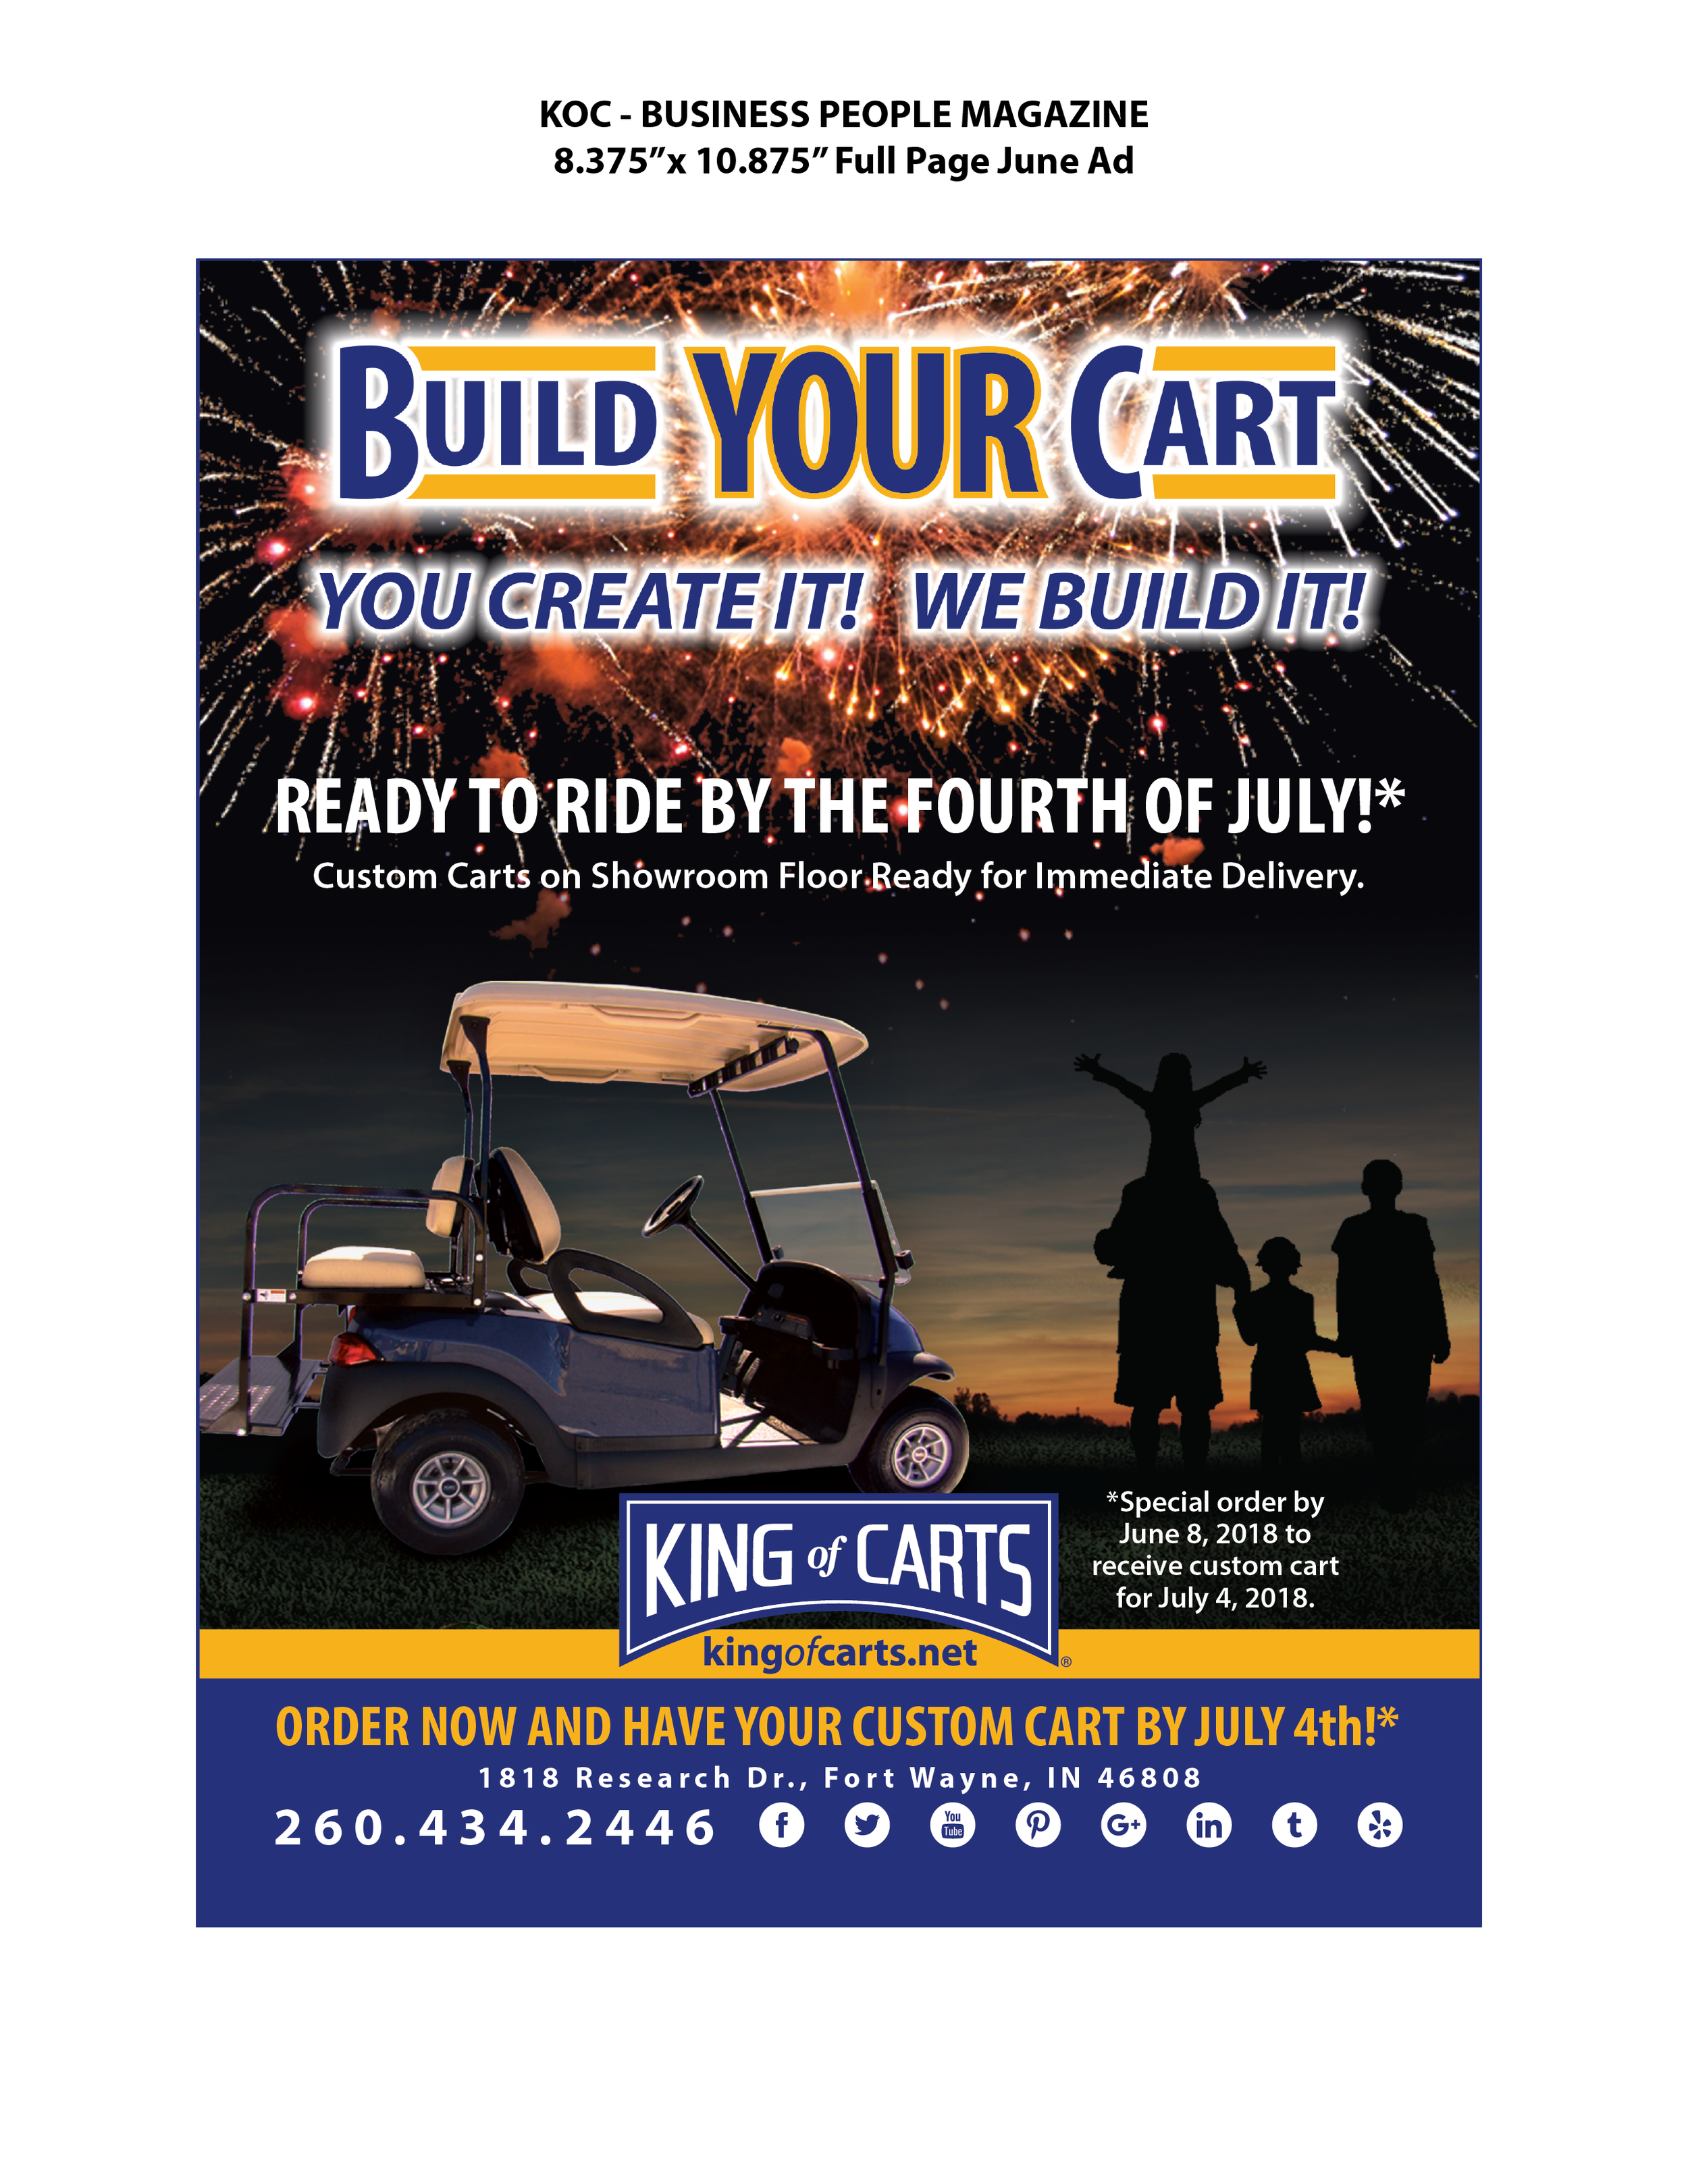 KOC-BusPeople-FullPageAdJune-2018-proof-03.PNG